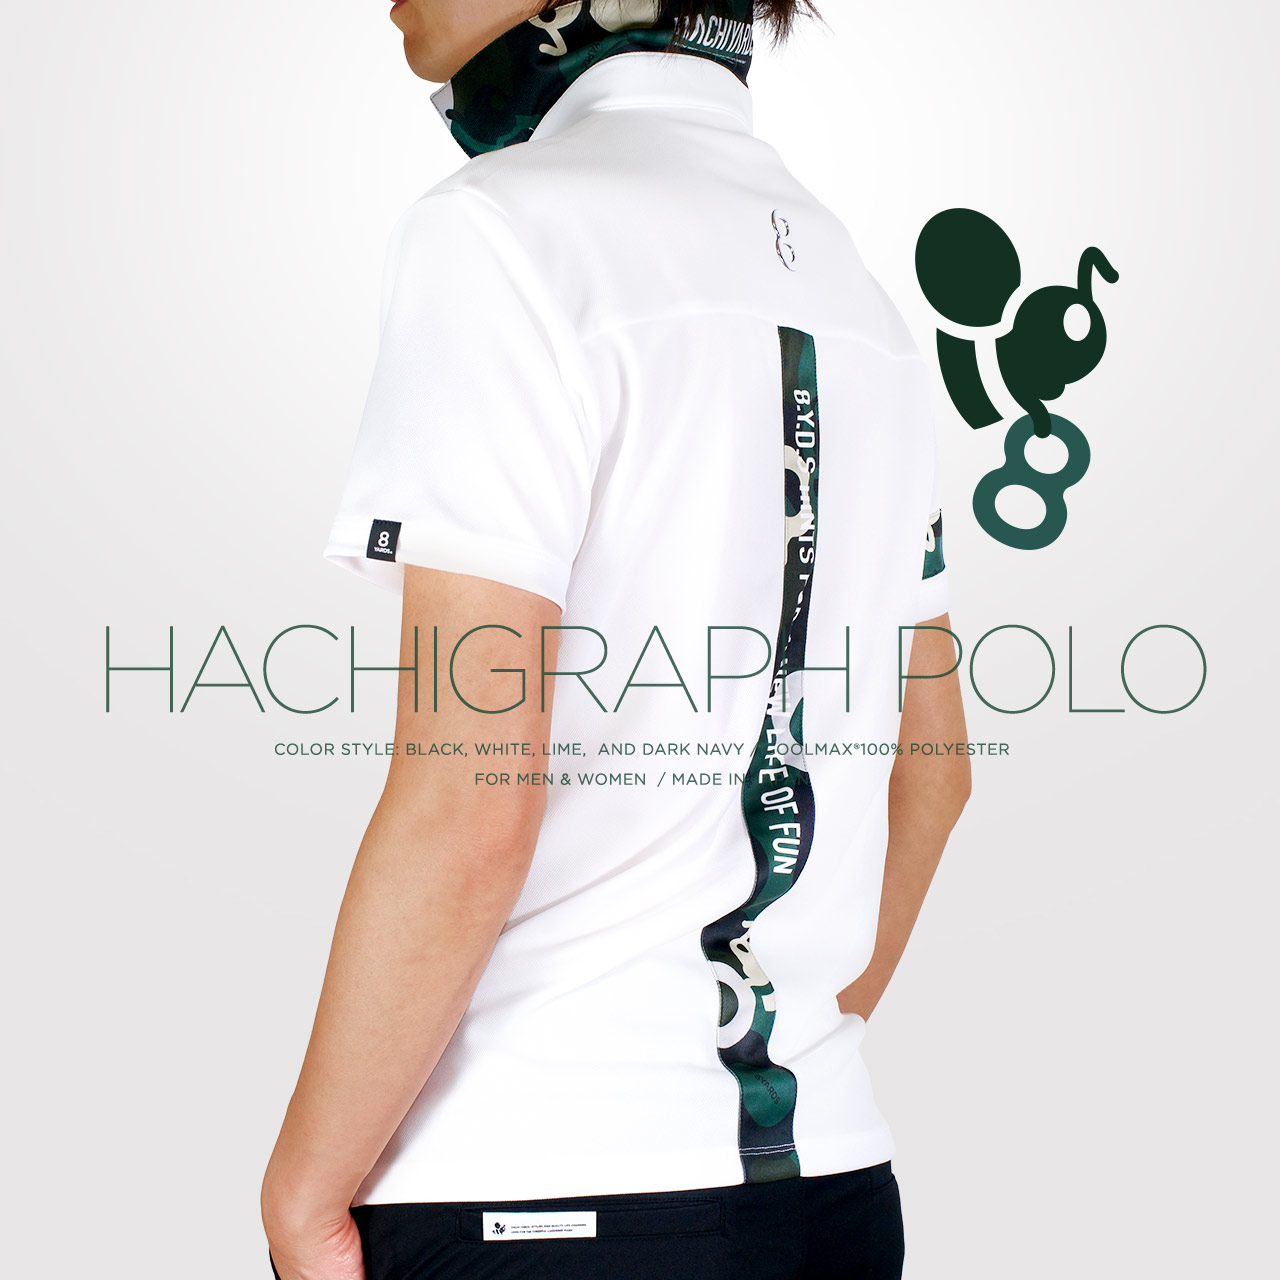 HACHIGRAPH Polo